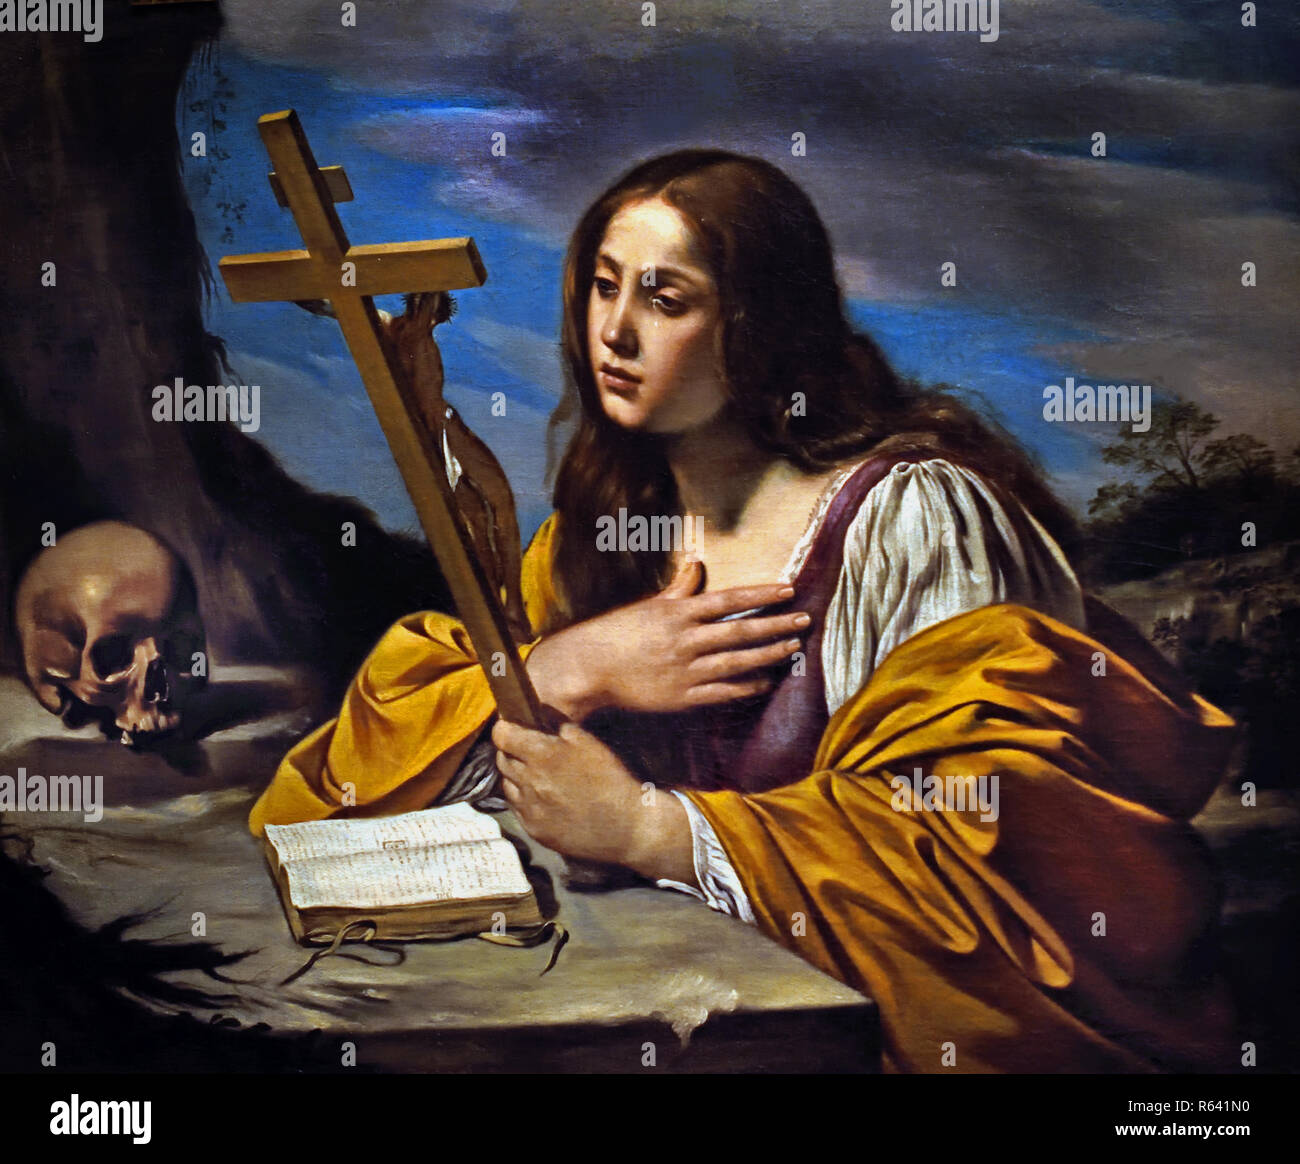 Mary Magdalene in contemplating the Cross 1630 Matteo Loves 17th century, Italy, Italian. - Stock Image